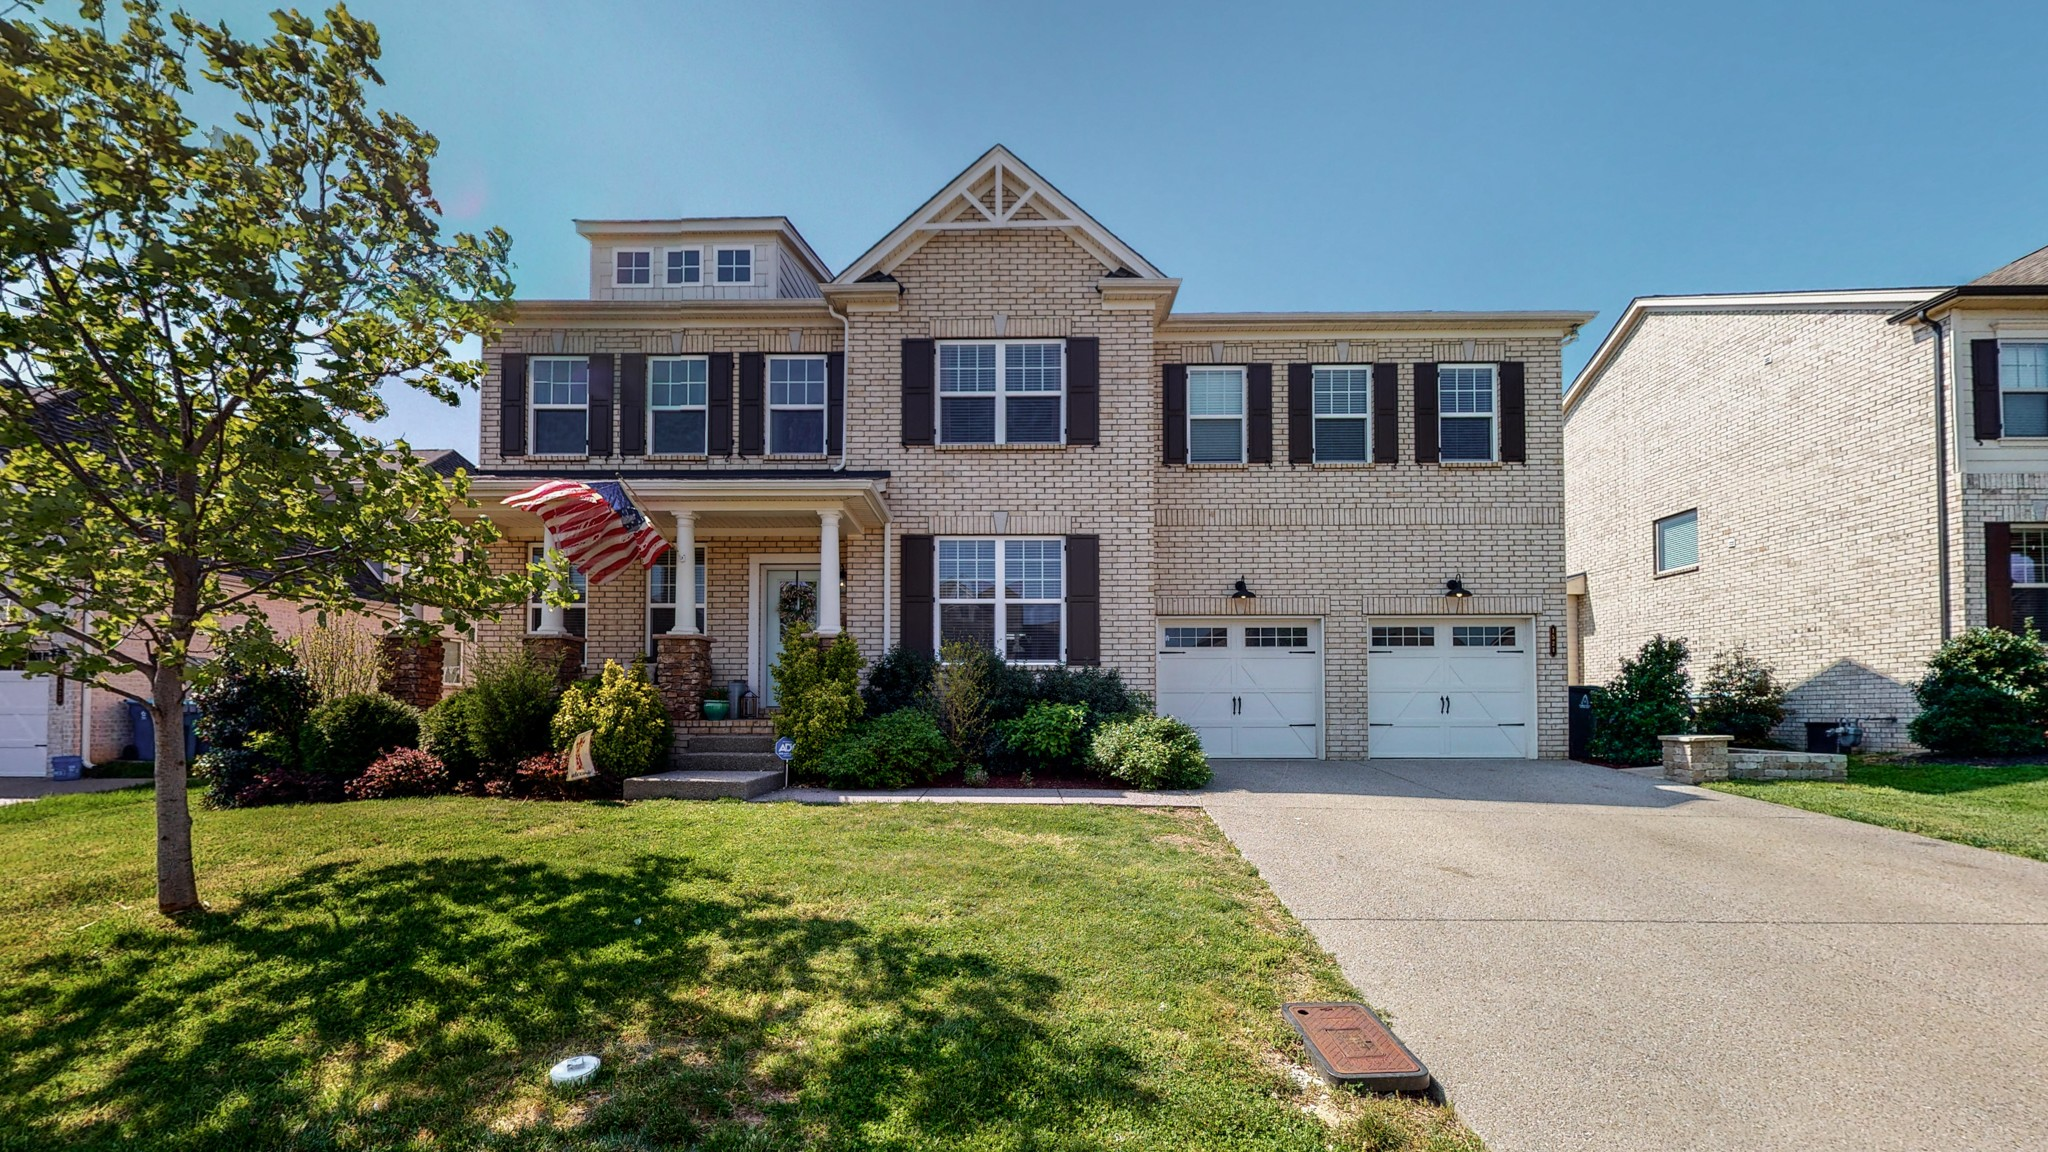 HUGE Price Adjustment!  4 Bed 2.5 Bath home in the Summerlyn Community! WALK to school! Gorgeous NEW Floors, Open Floor Plan, Custom  Outdoor Fire Pit, Beautiful Fenced level yard that backs up to common area.  Awesome upstairs bonus/playroom.